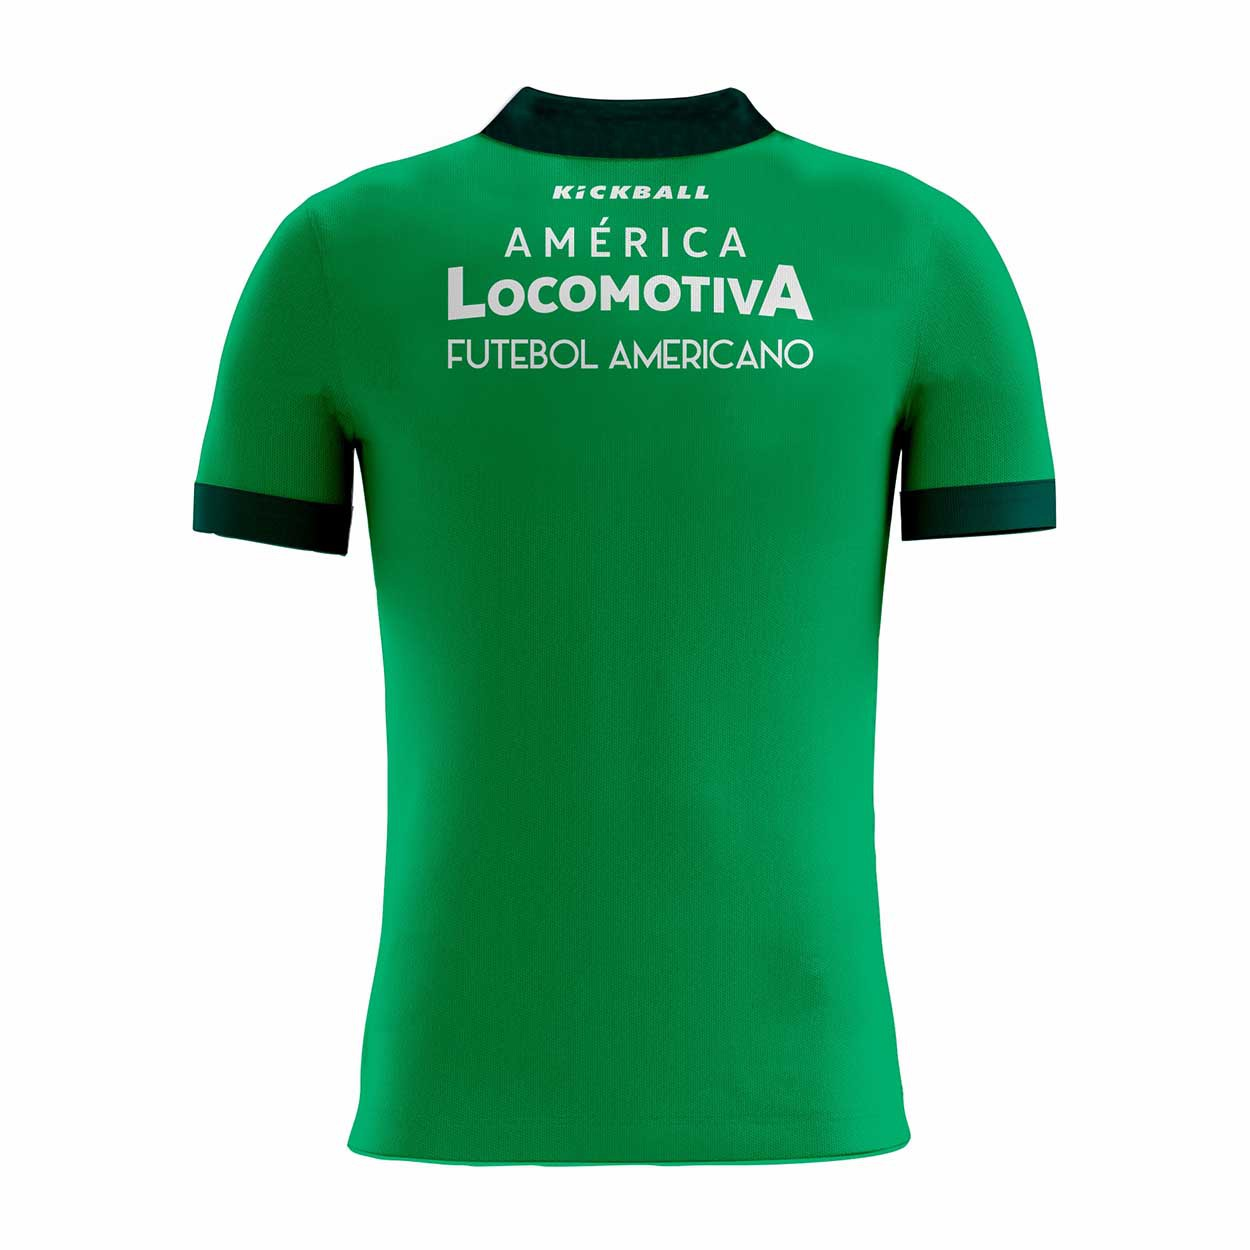 Camisa Of. América Locomotiva Tryout Polo Inf. Mod1